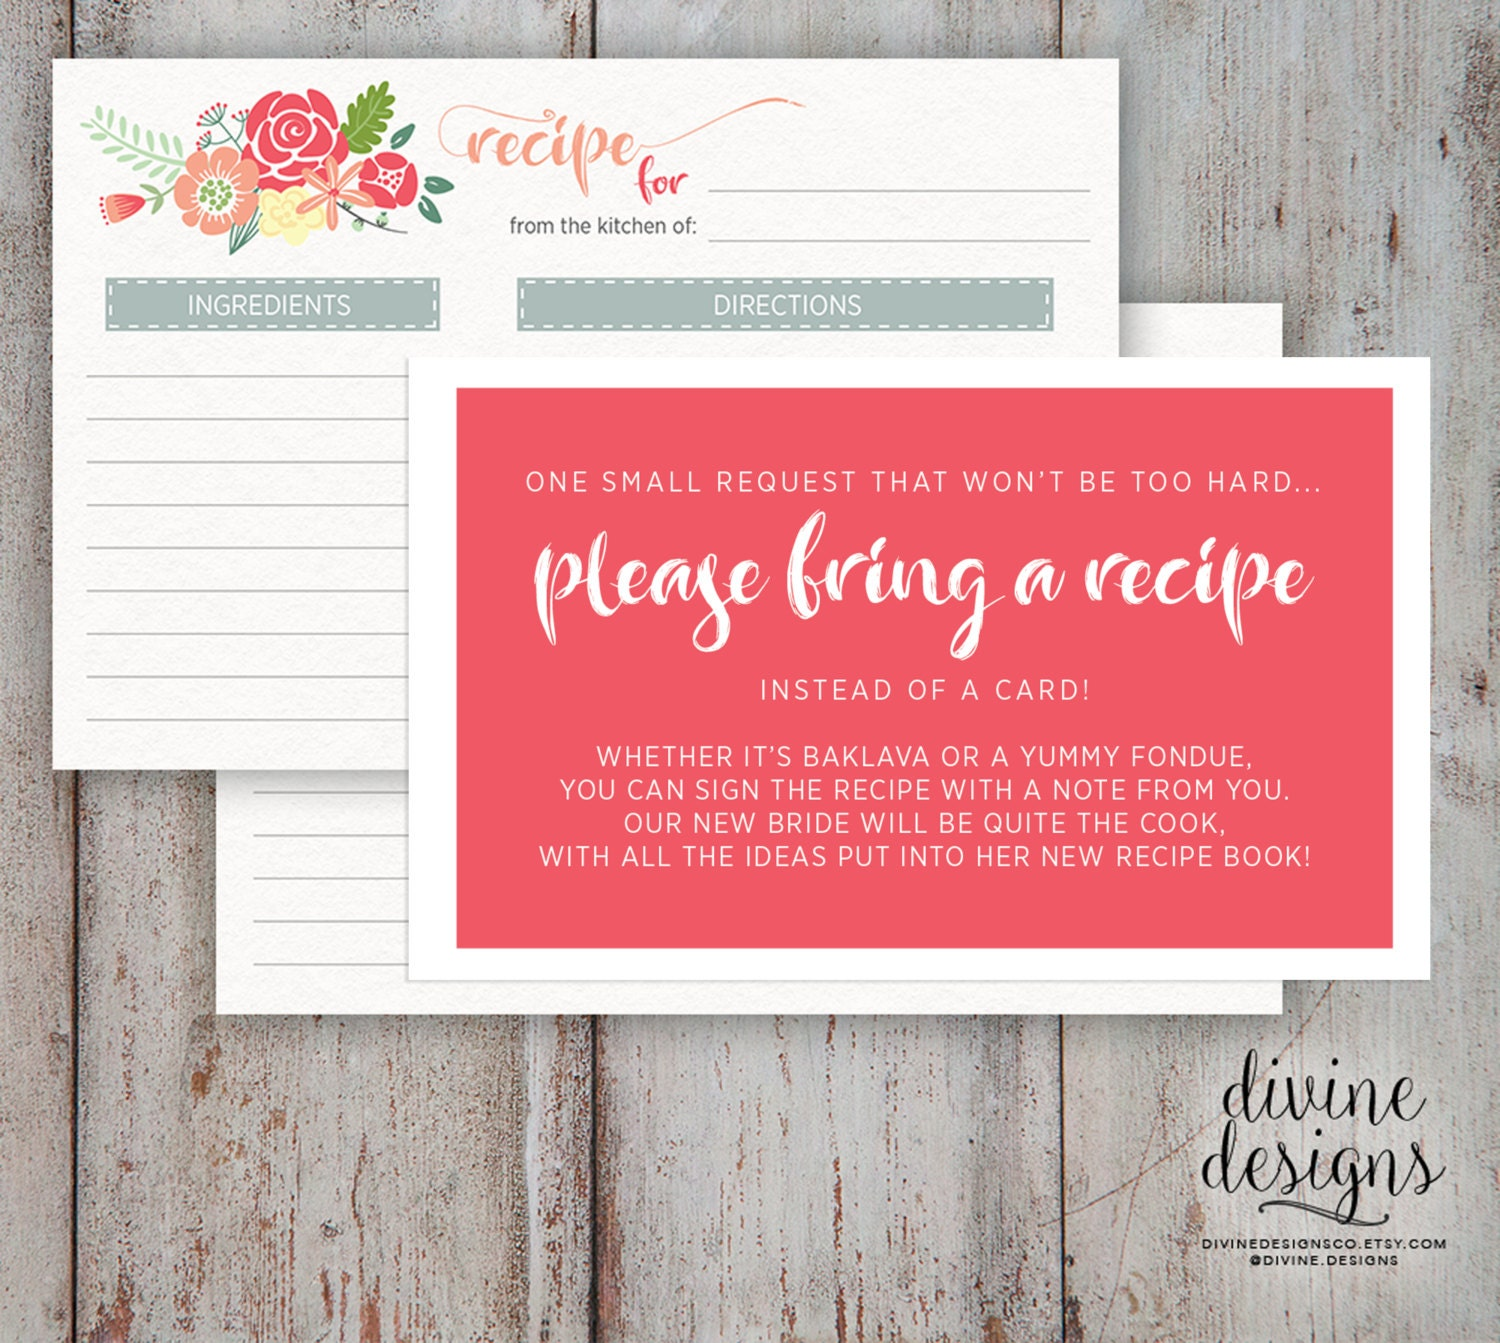 Recipe Card Bridal Shower Please Bring a Recipe Cute